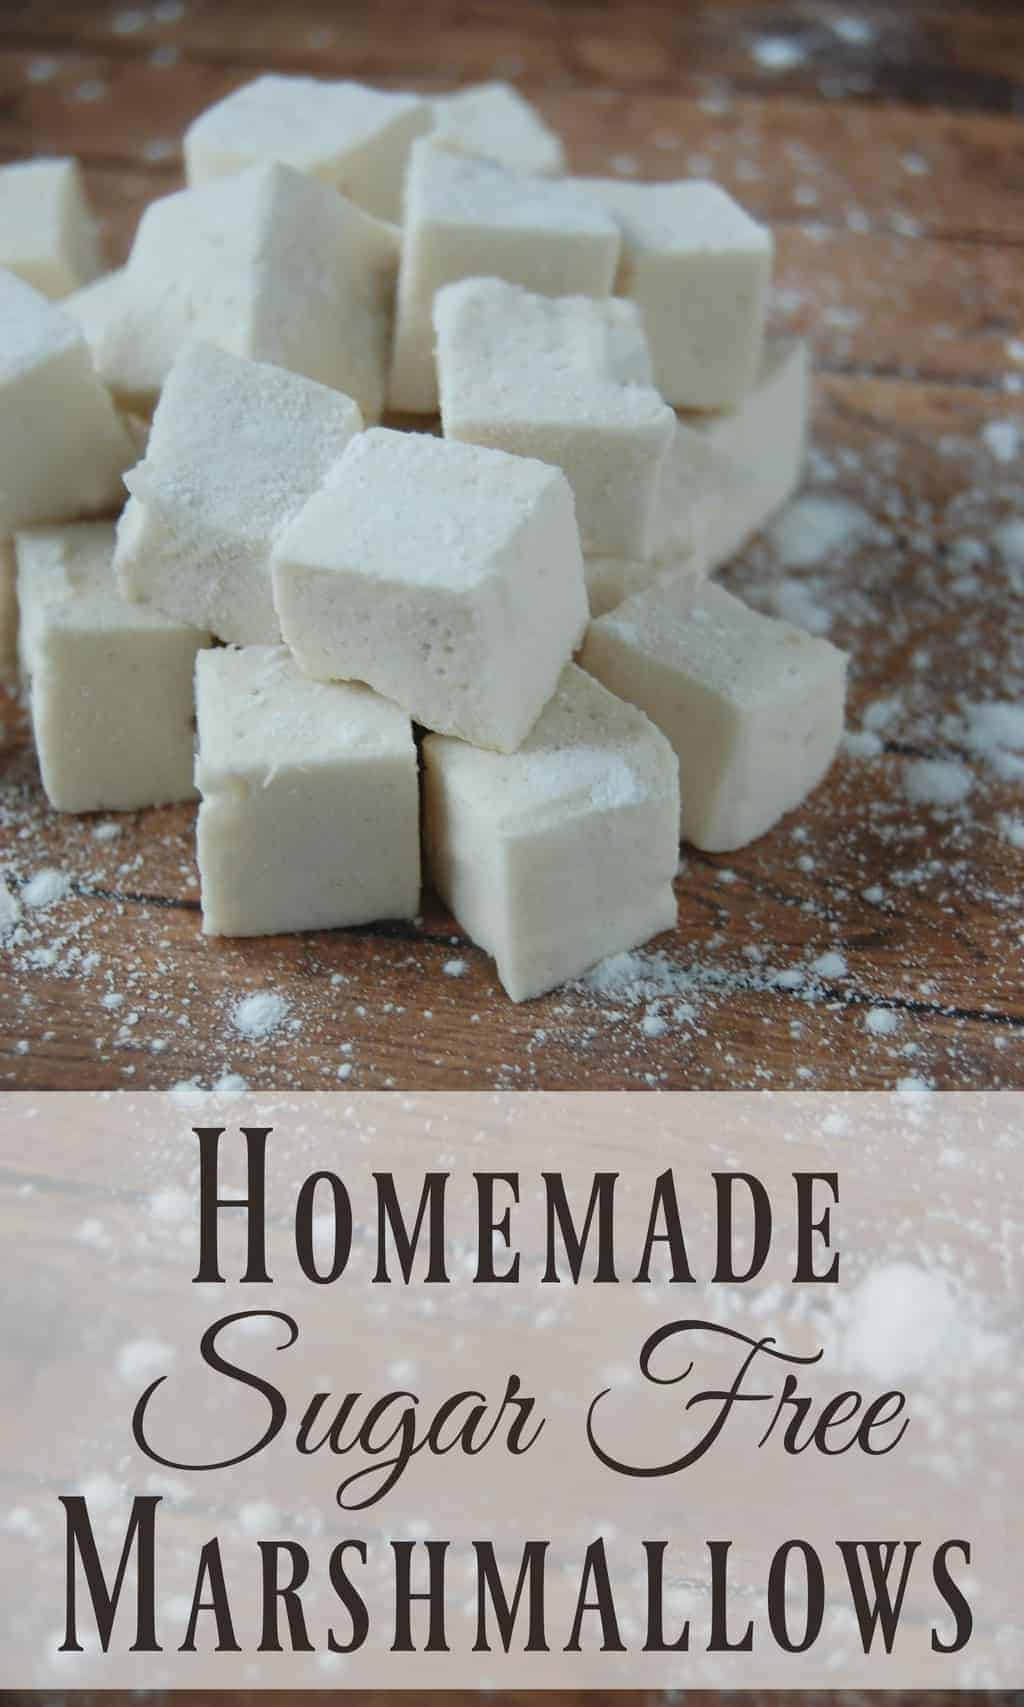 Homemade Sugar Free Marshmallows! - Where has this been all my life? No more guilt tripping over marshmallows for me! These things are practically a health food once you ditch all the yucky ingredients that most store bought marshmallows have! #marshmallows #homemade #gelatin #sugarfree #refinedsugarfree #smores #hotchocolate